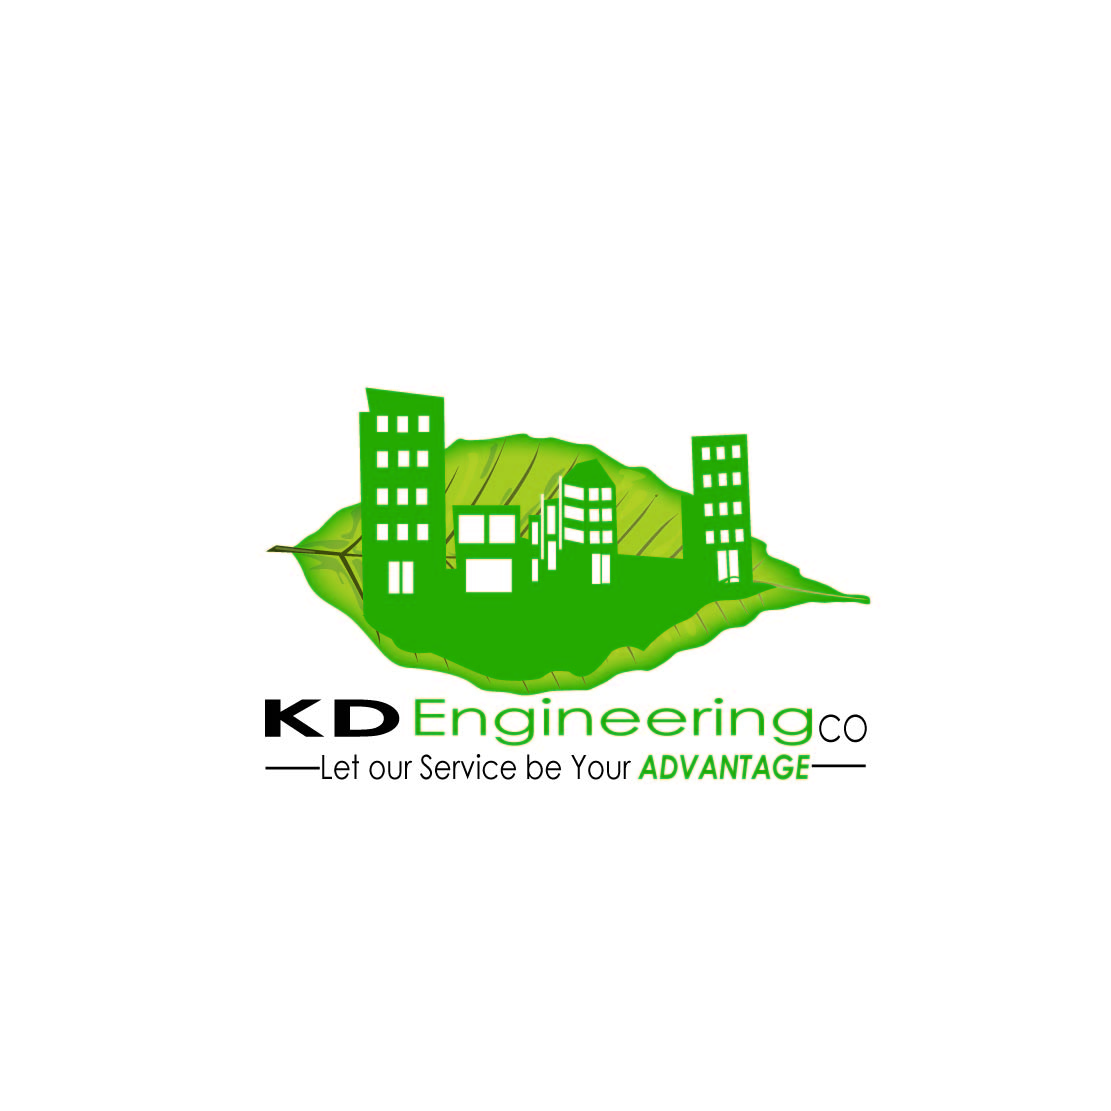 Logo Design by Saunter - Entry No. 56 in the Logo Design Contest KD Engineering Co..